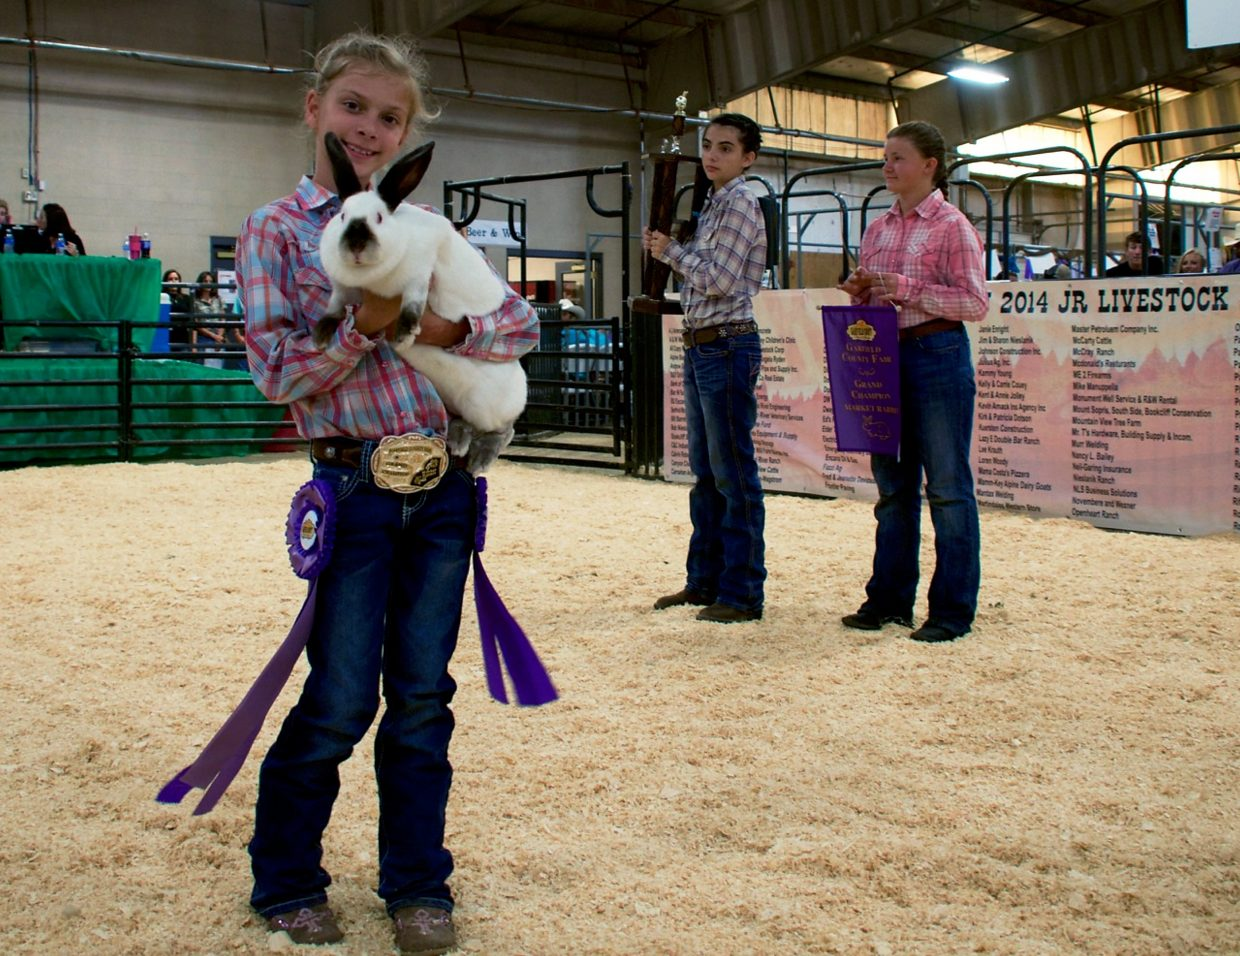 Hannah Barbados shows off her prize-winning rabbit, which sold for $2,000 at the livestock sale during the Garfield County Fair on Saturday afternoon.